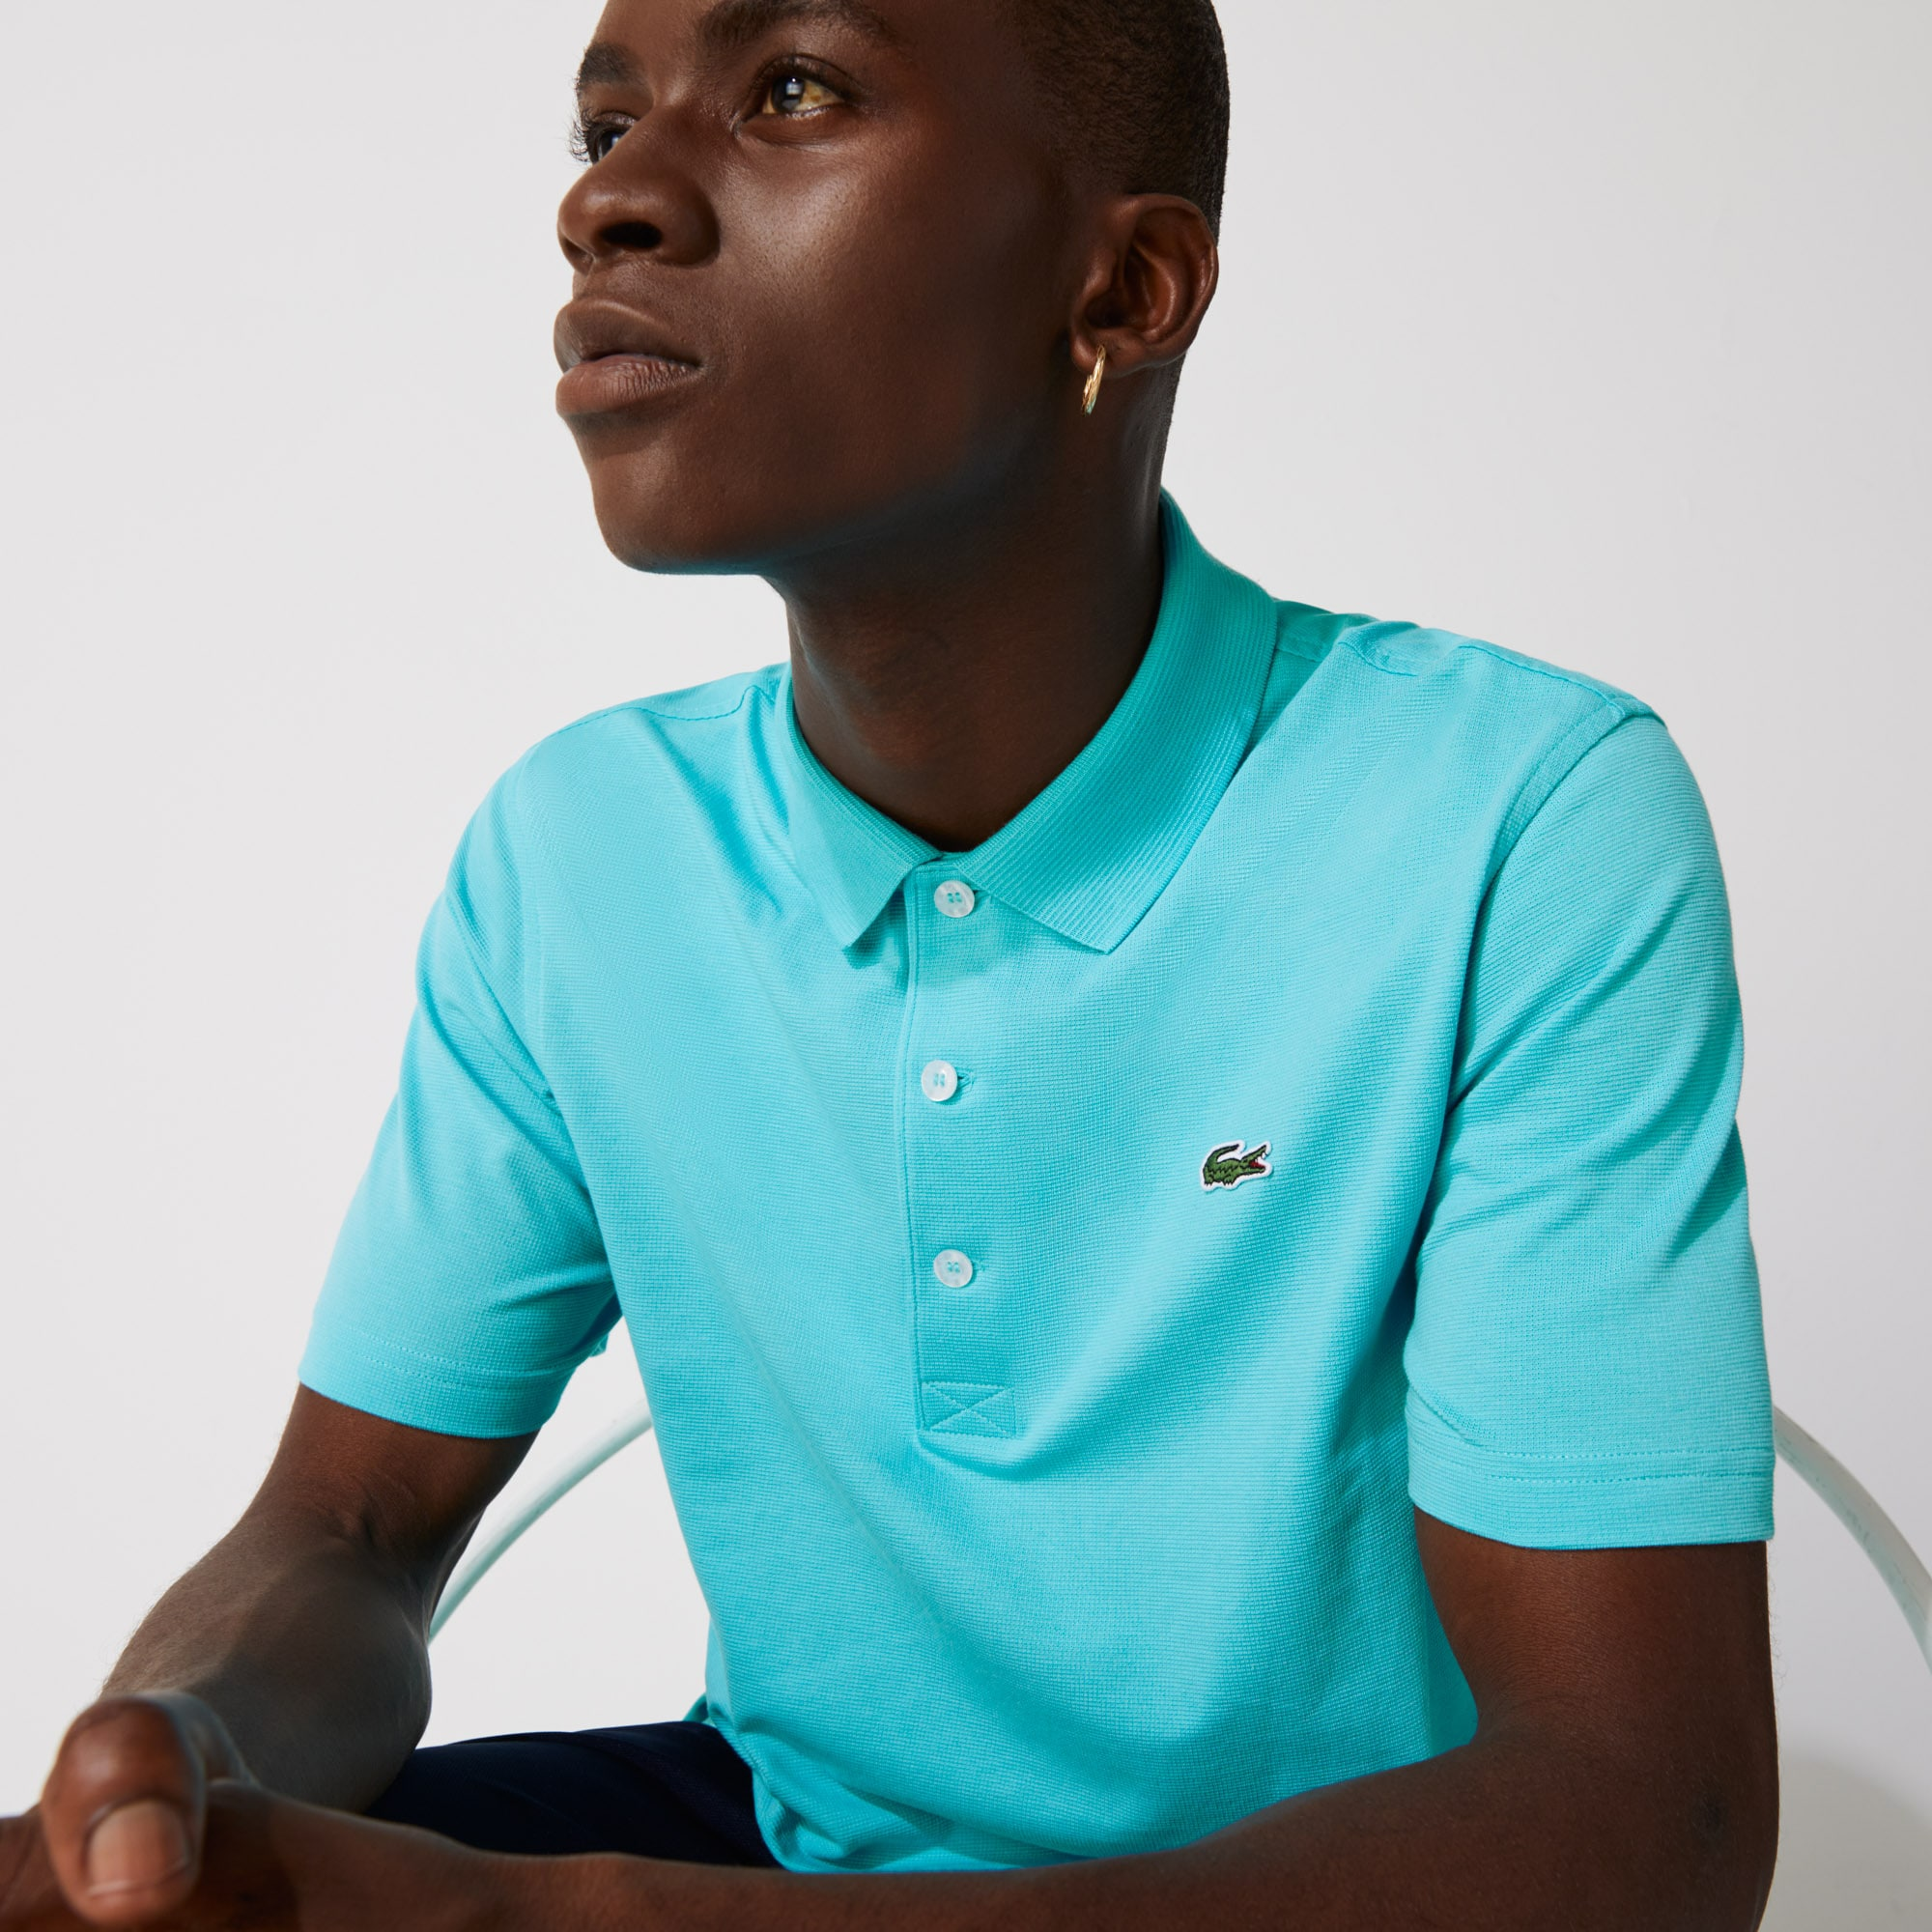 Lacoste SPORT-polo Heren Tennis Regular Fit in Ultralicht Breiwerk